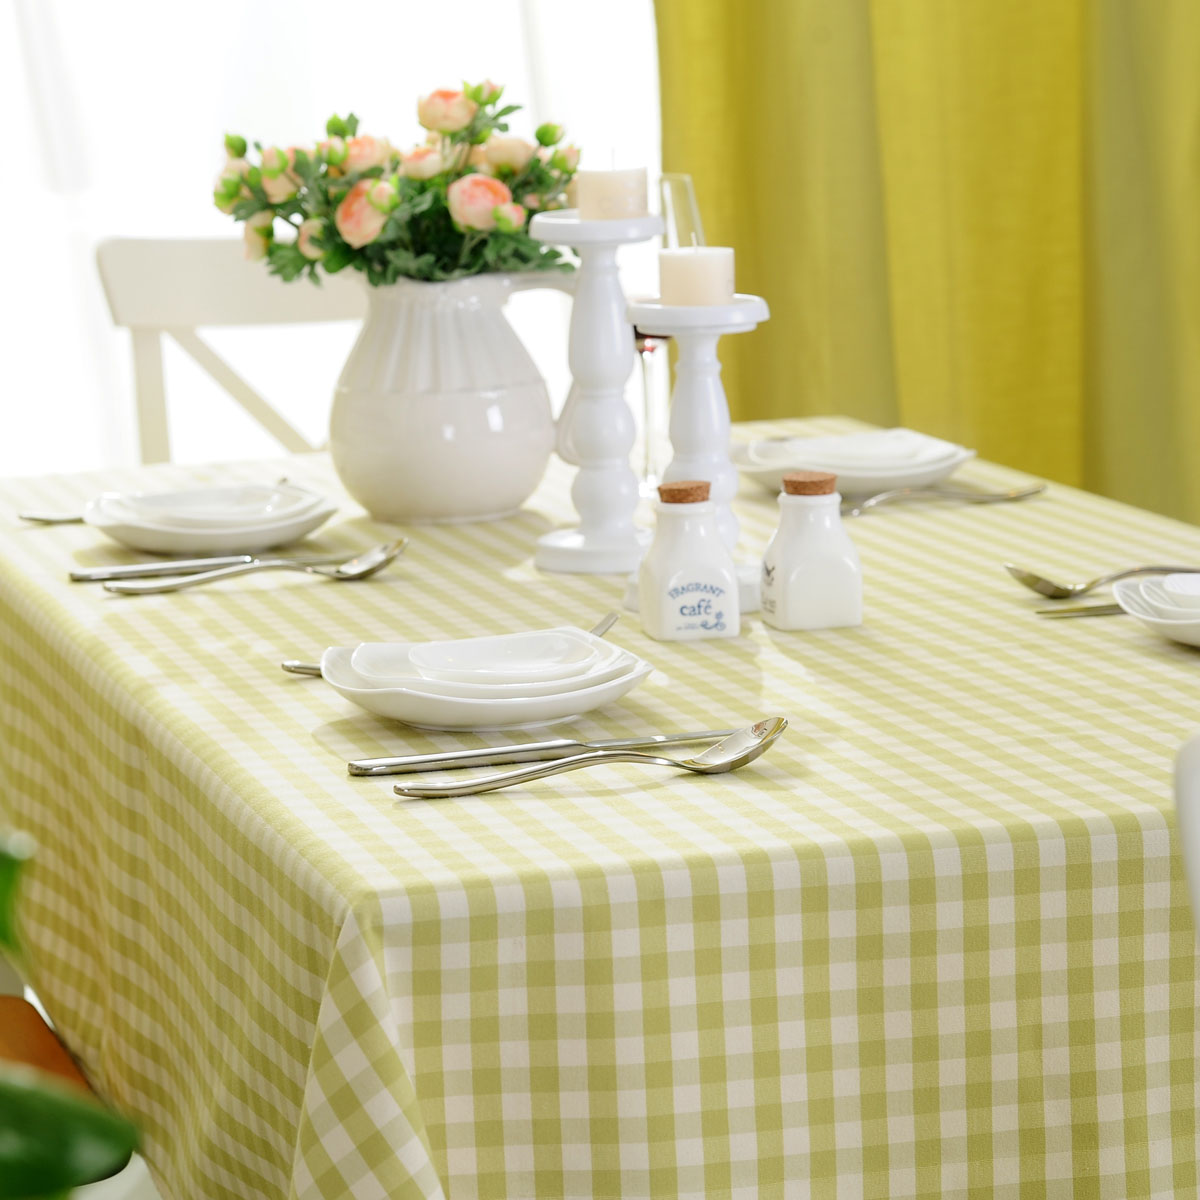 Pastoral Style Green Plaid Tablecloths Table Cloth Cover Round Rectangular Tablecloth Home Decoration